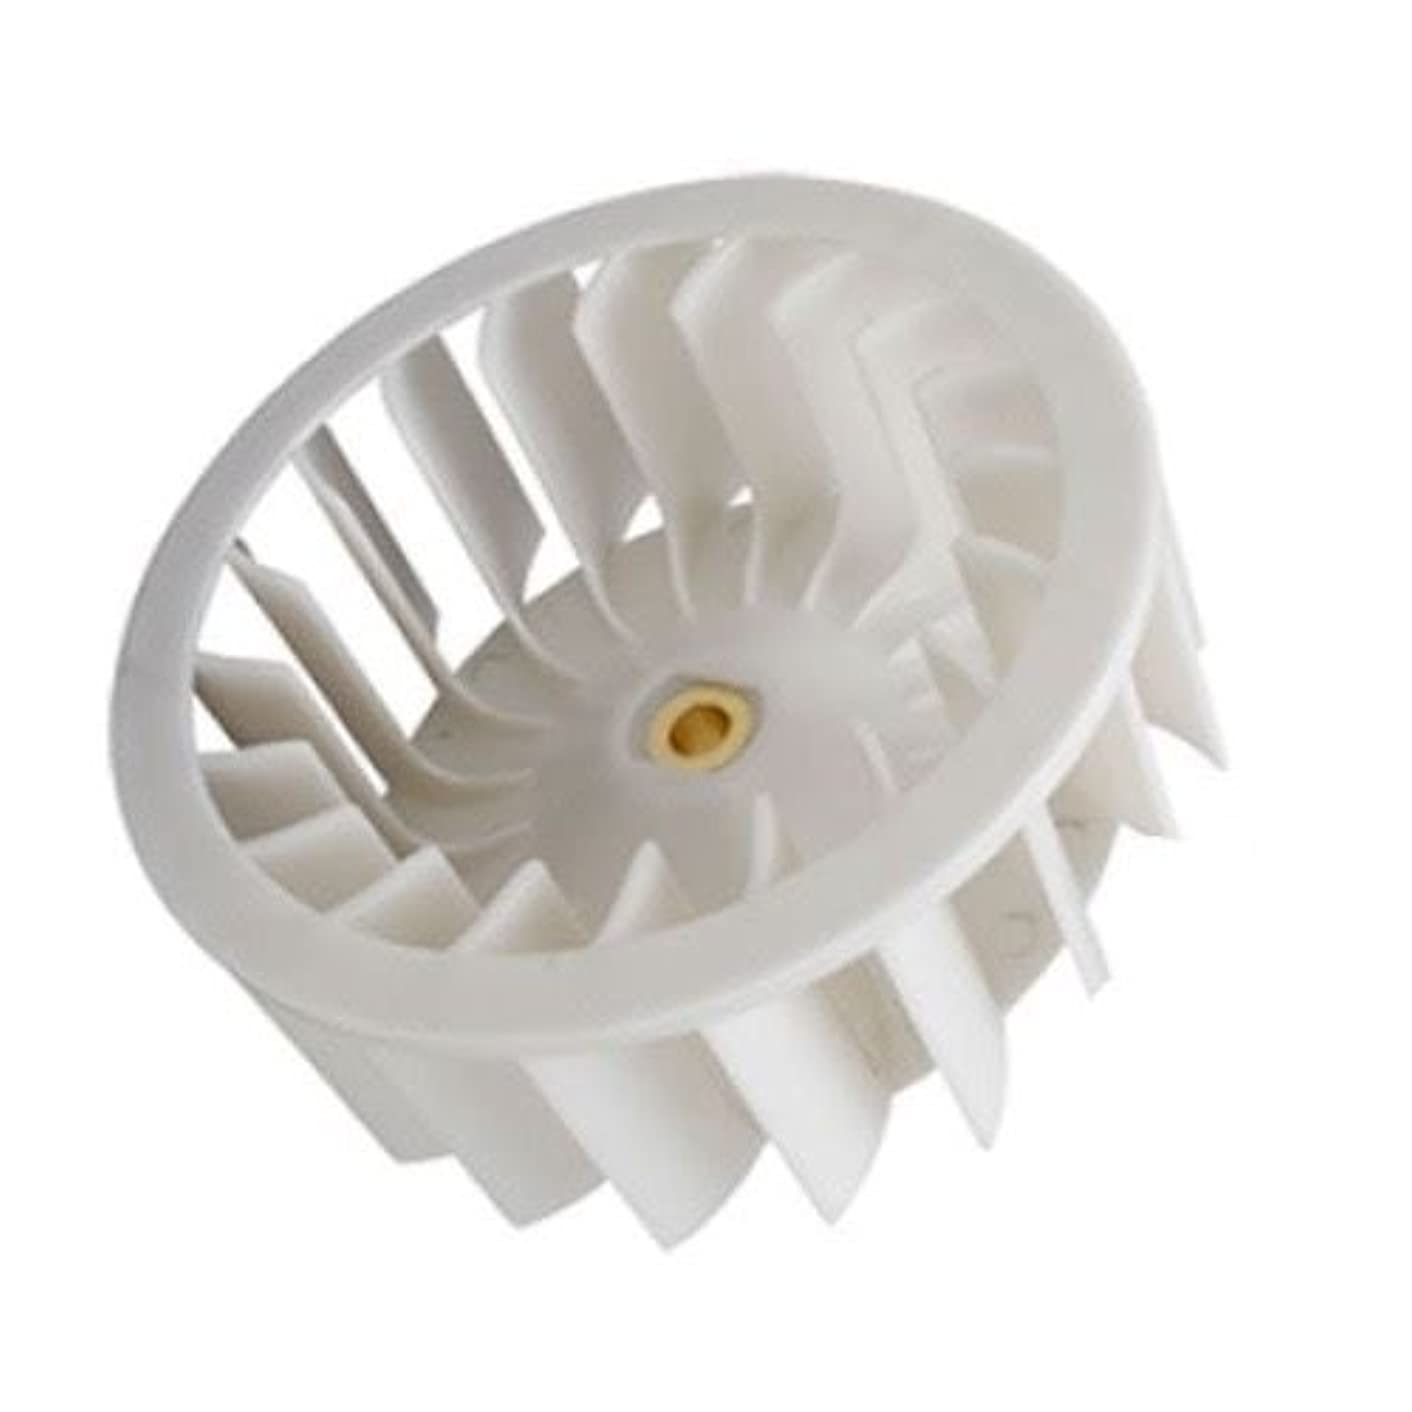 AH3528491 - General Electric Aftermarket Replacement Dryer Blower Wheel